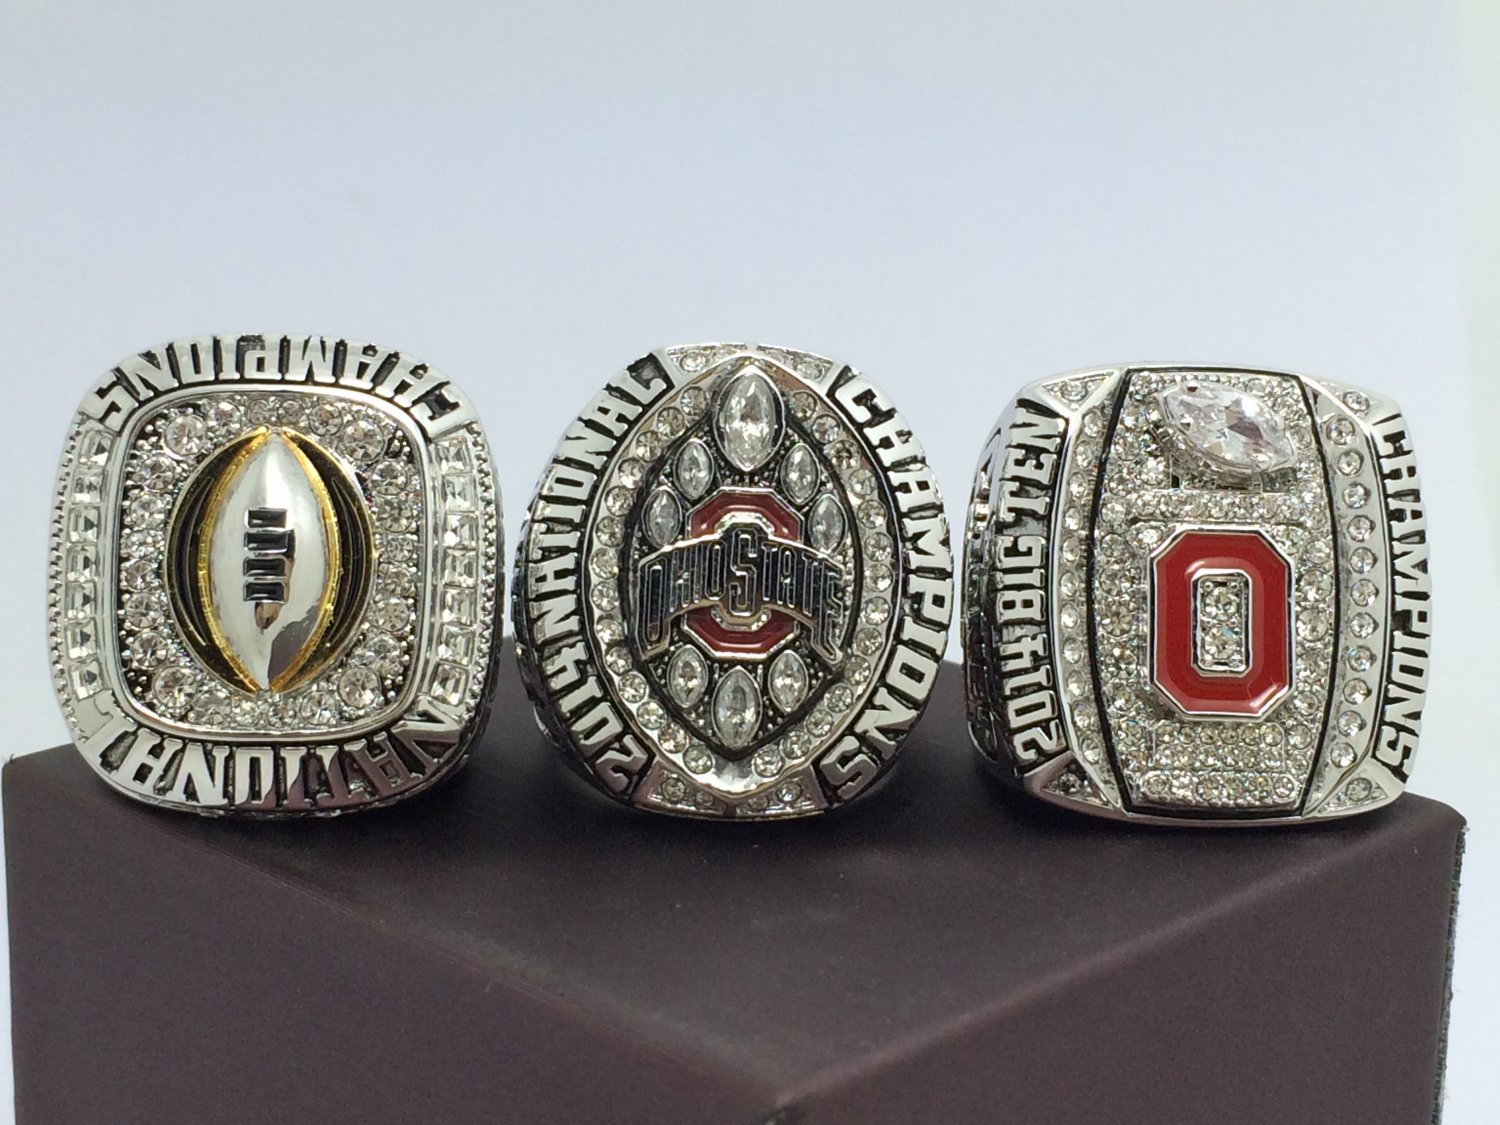 One Set 3PCS 2014 2015 Ohio State Buckeyes National Championship Ring 8-14 Size With wooden box